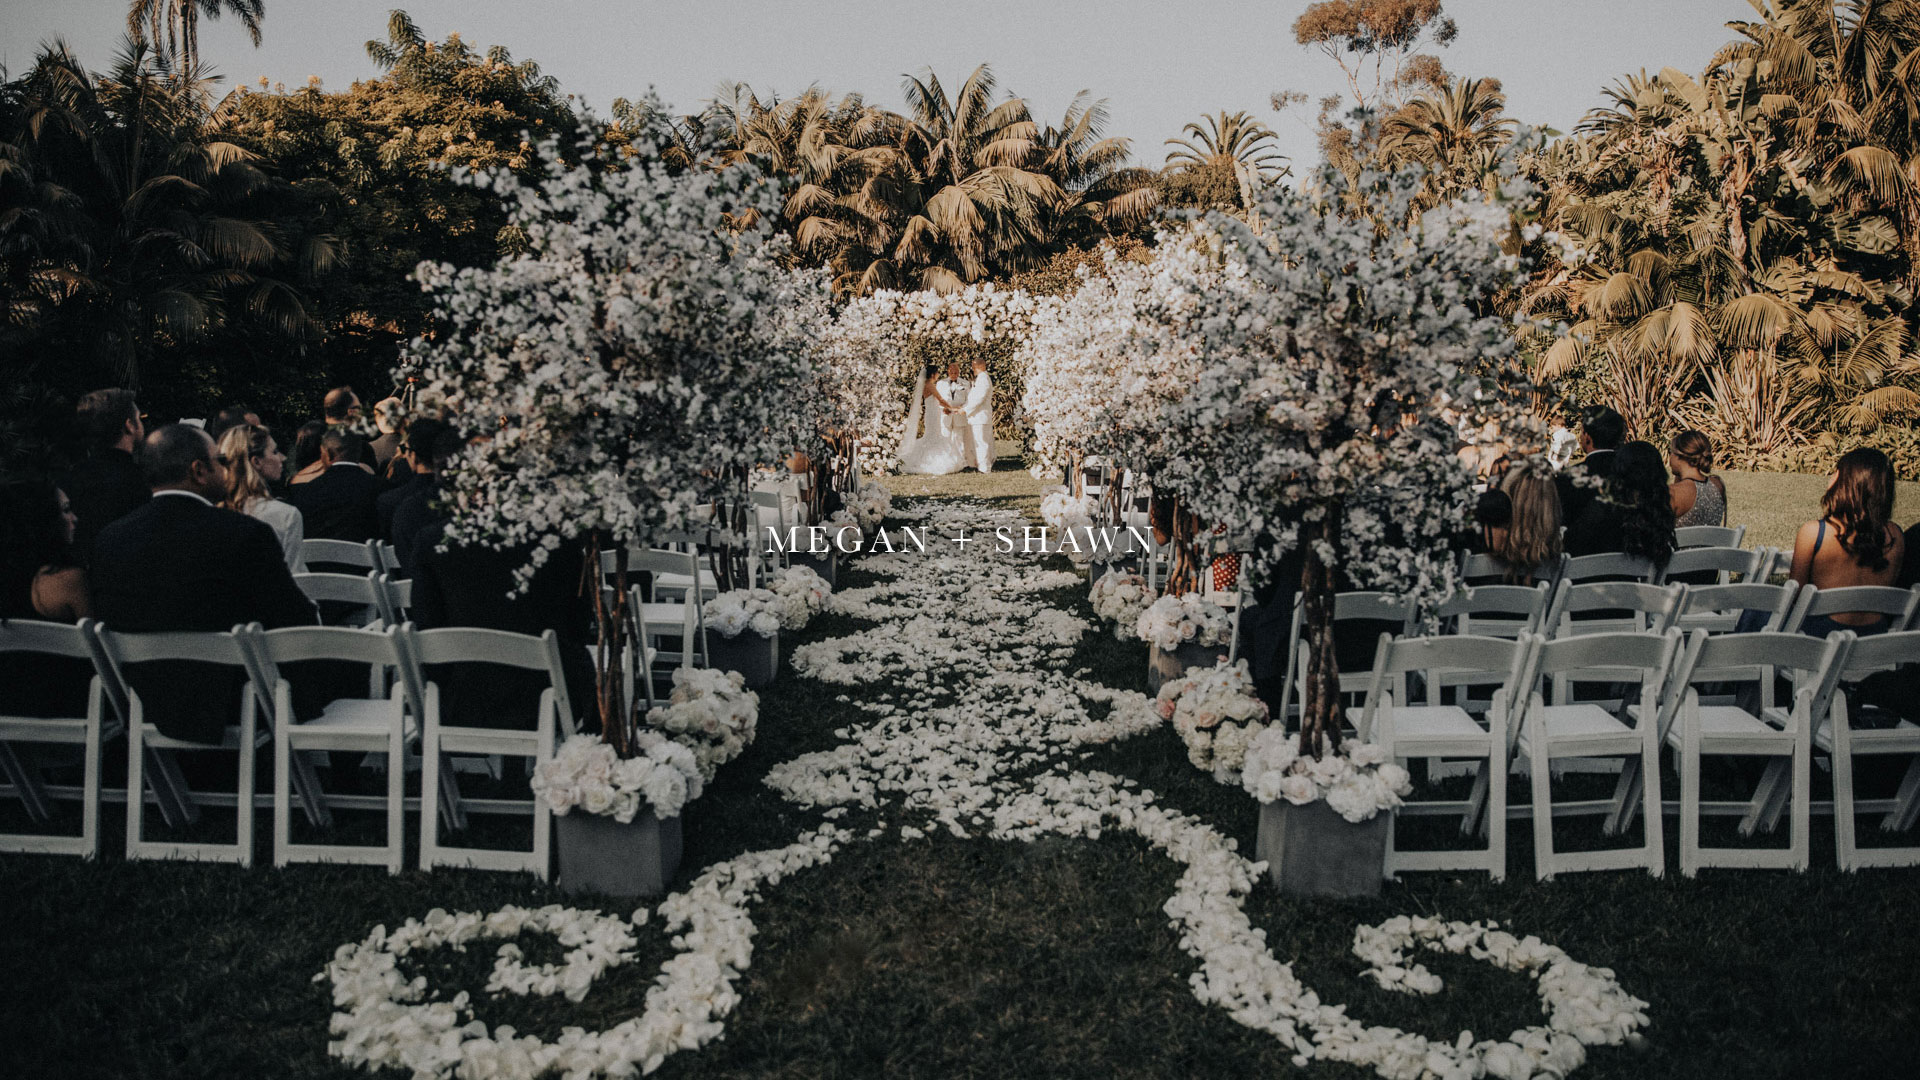 Megan + Shawn | Santa Barbara, California | Four Seasons Biltmore Santa Barbara